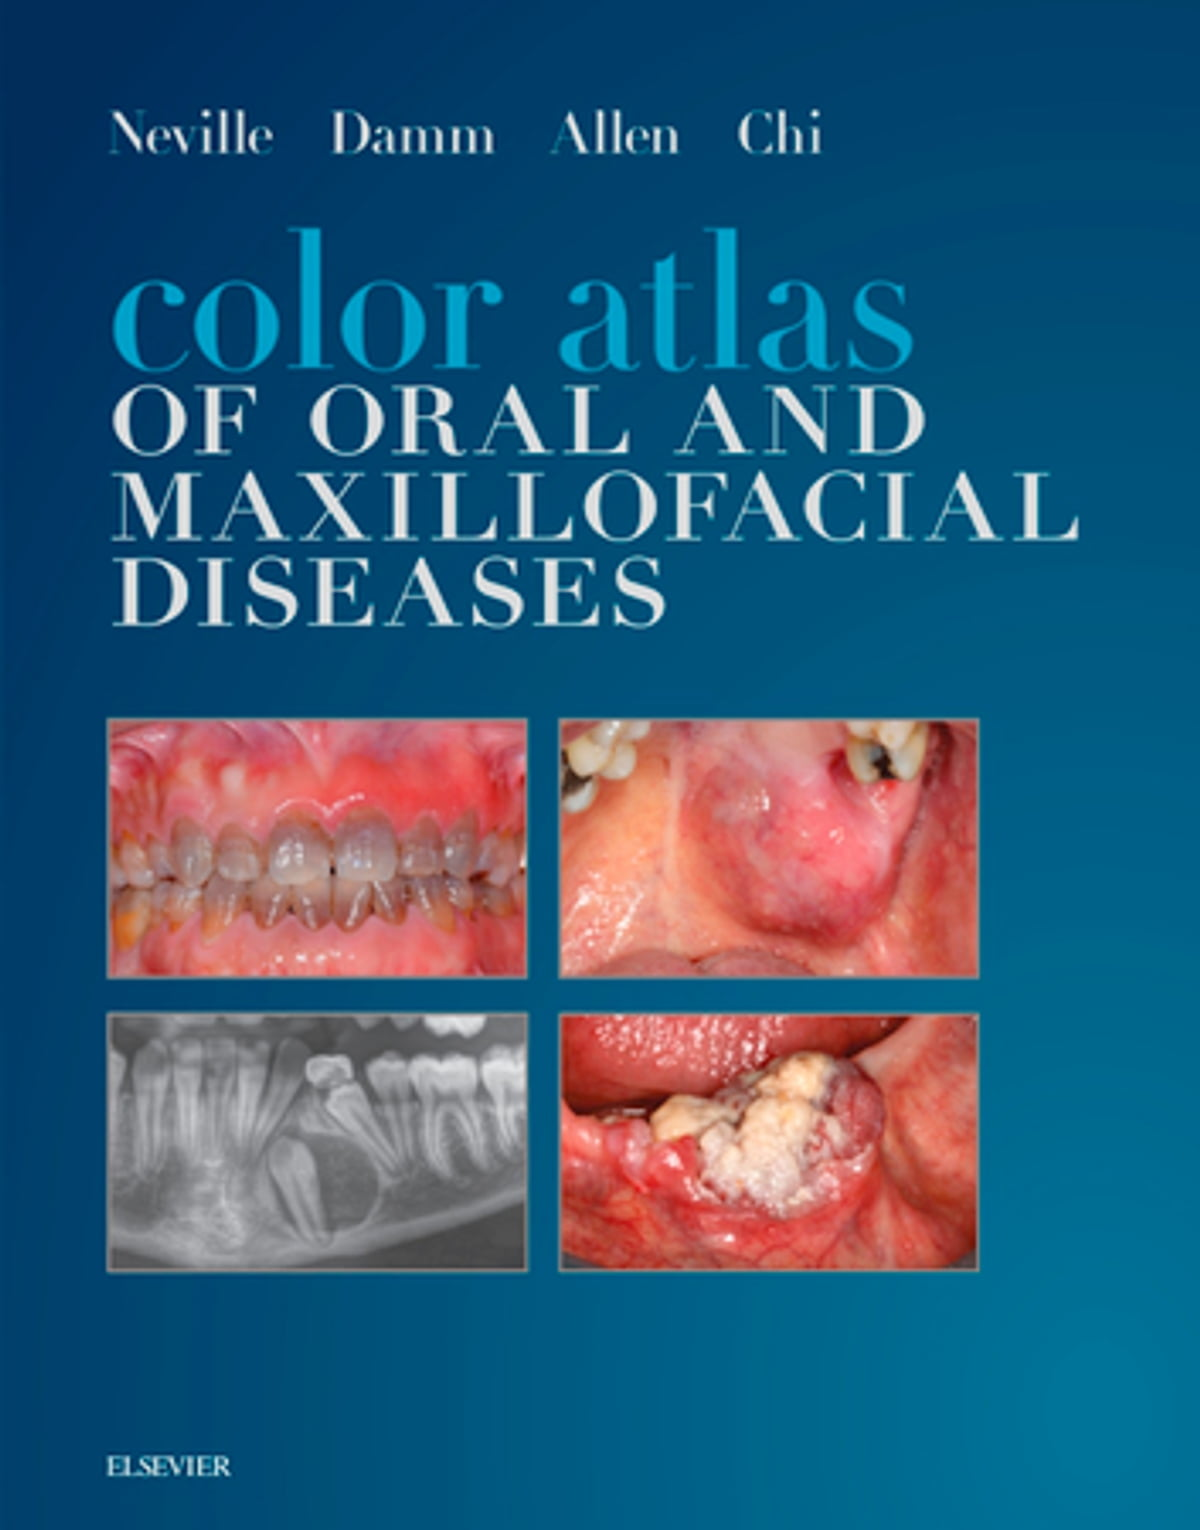 Management Of Dental Infections By Medical Practitioners